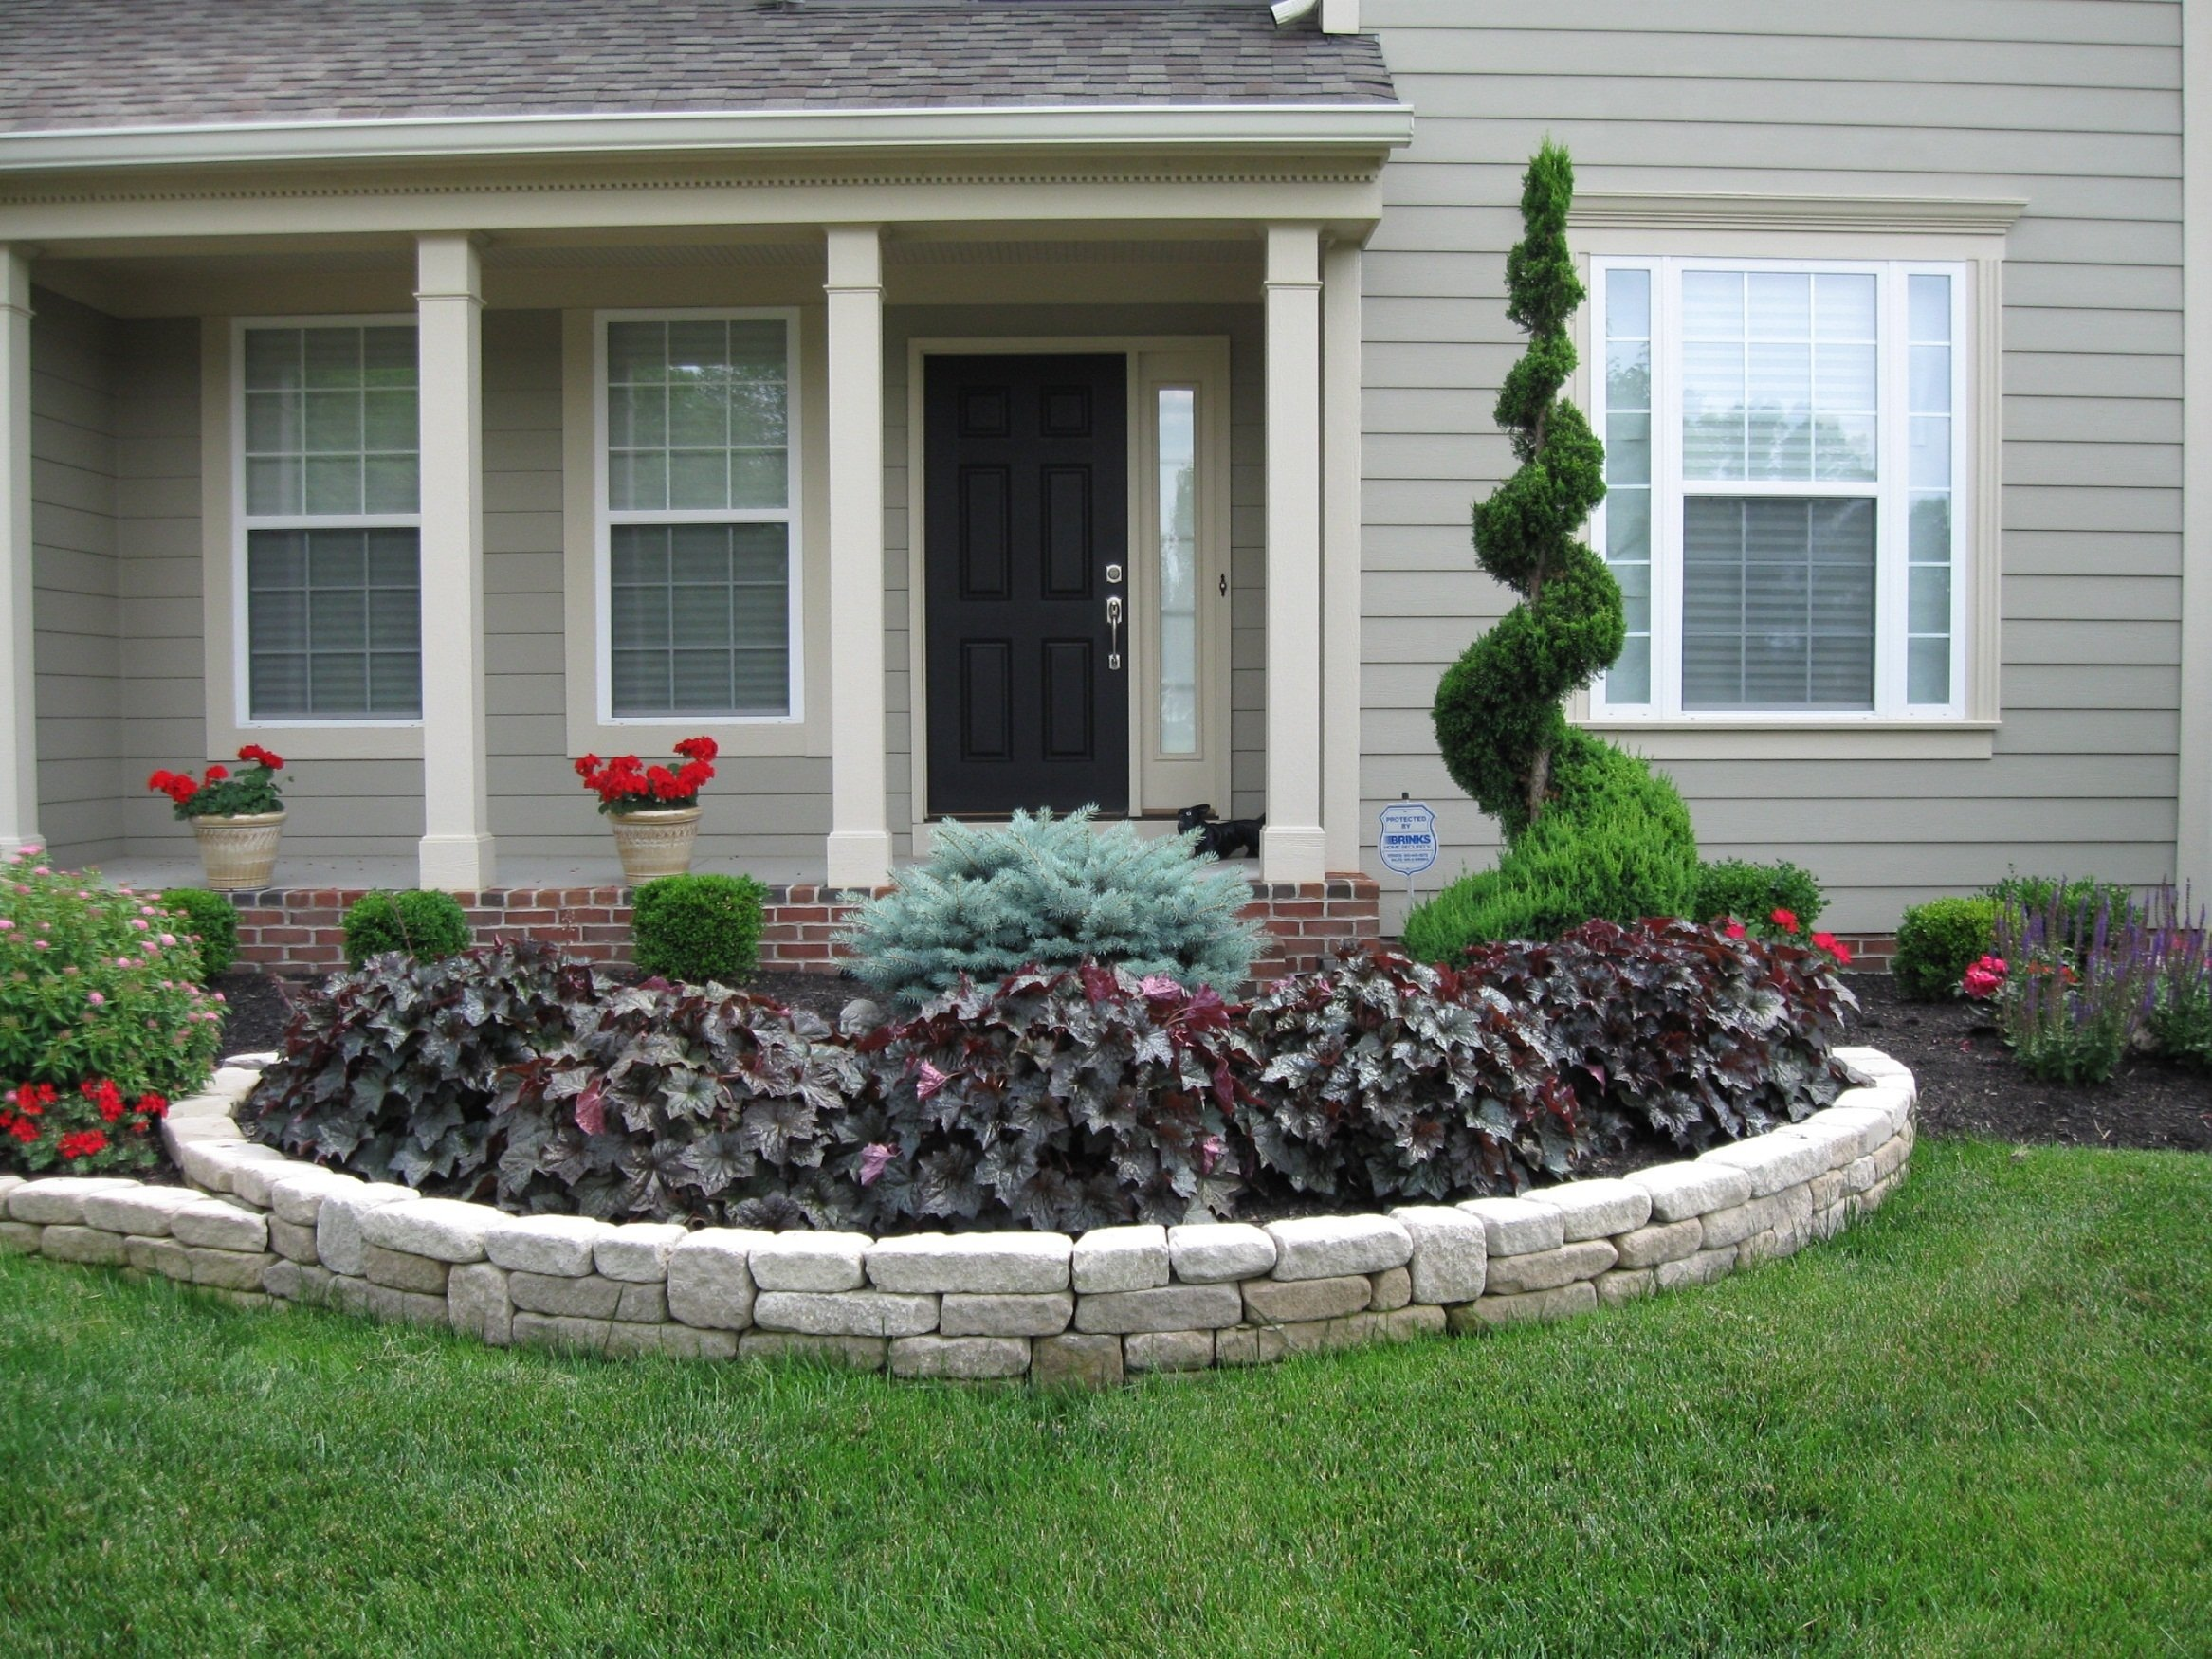 10 Lovable Flower Bed Ideas For Front Of House front yard flower bed ideas the best flowers attractive landscape 1 2021